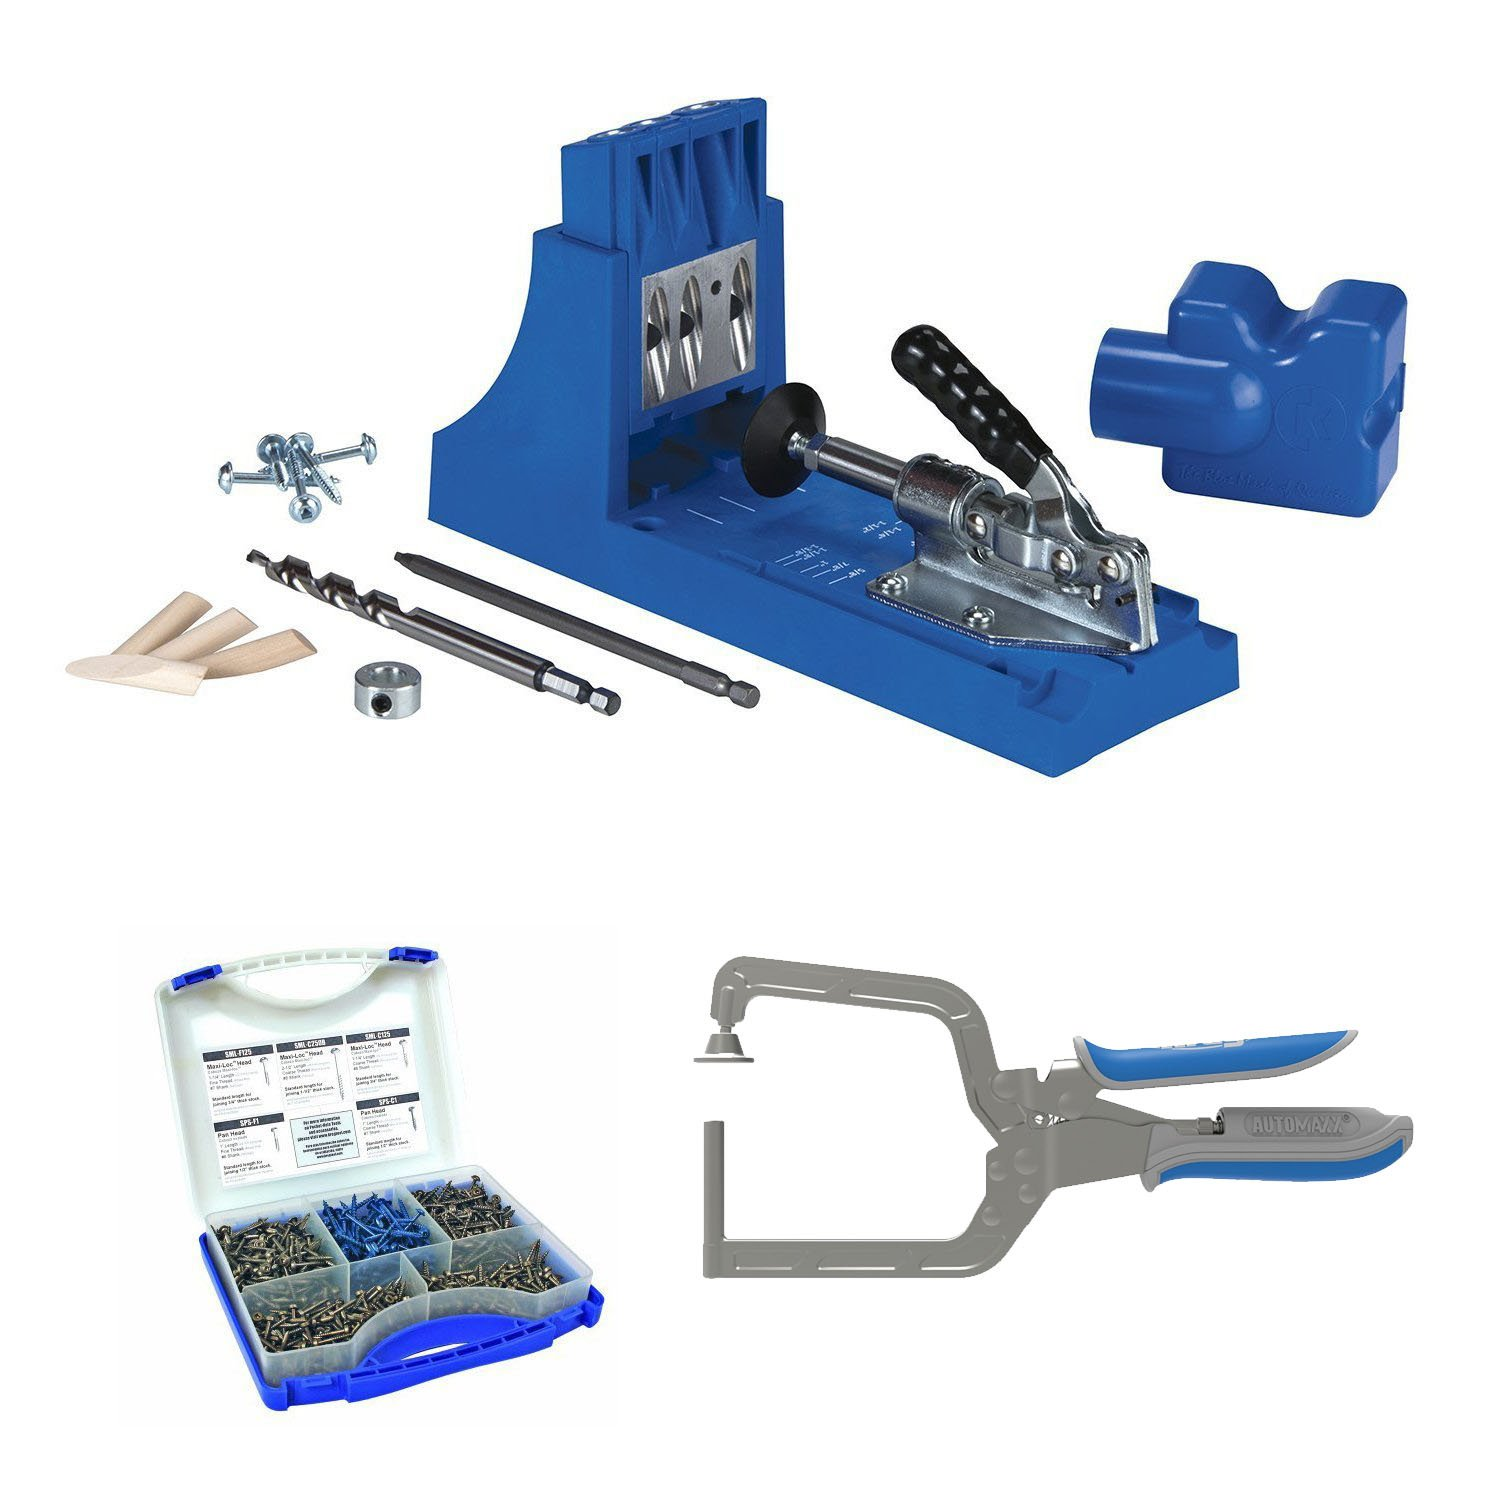 Kreg Jig K4 System With SK03 Pocket-Hole Screws and Right Angle Clamp